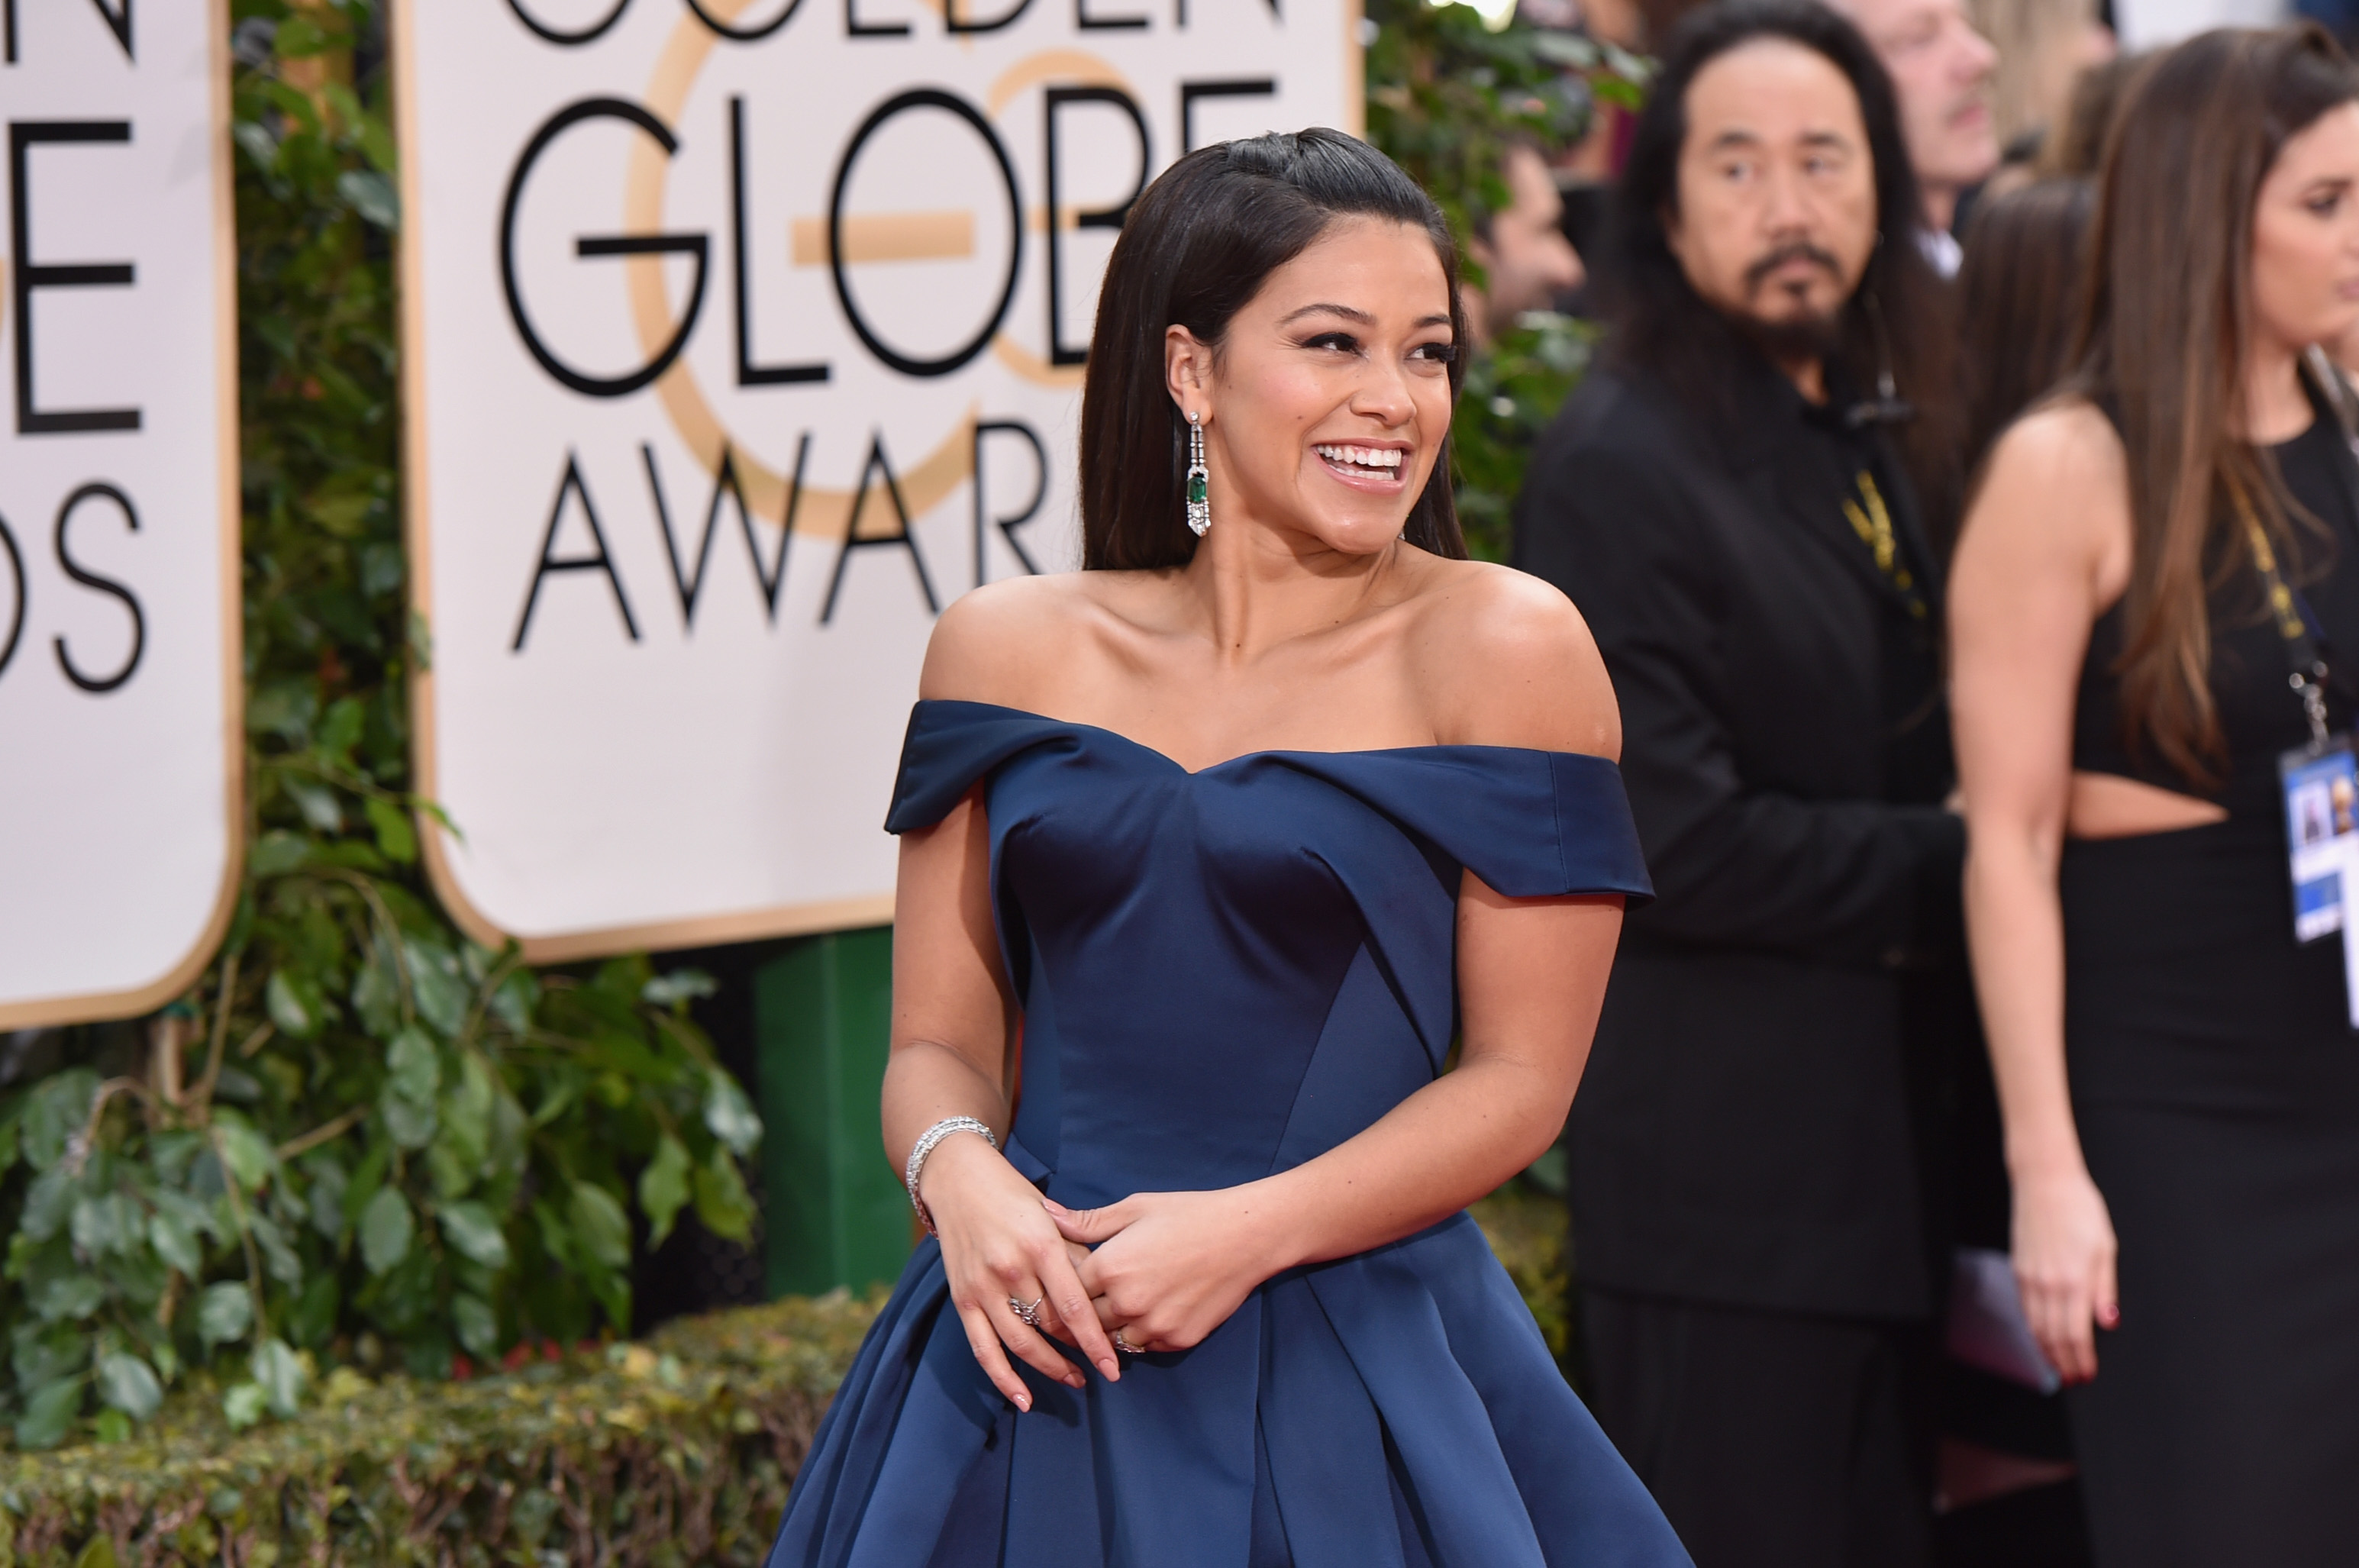 Actress Gina Rodriguez attends the 73rd Annual Golden Globe Awards held at the Beverly Hilton Hotel on January 10, 2016 in Beverly Hills, California.